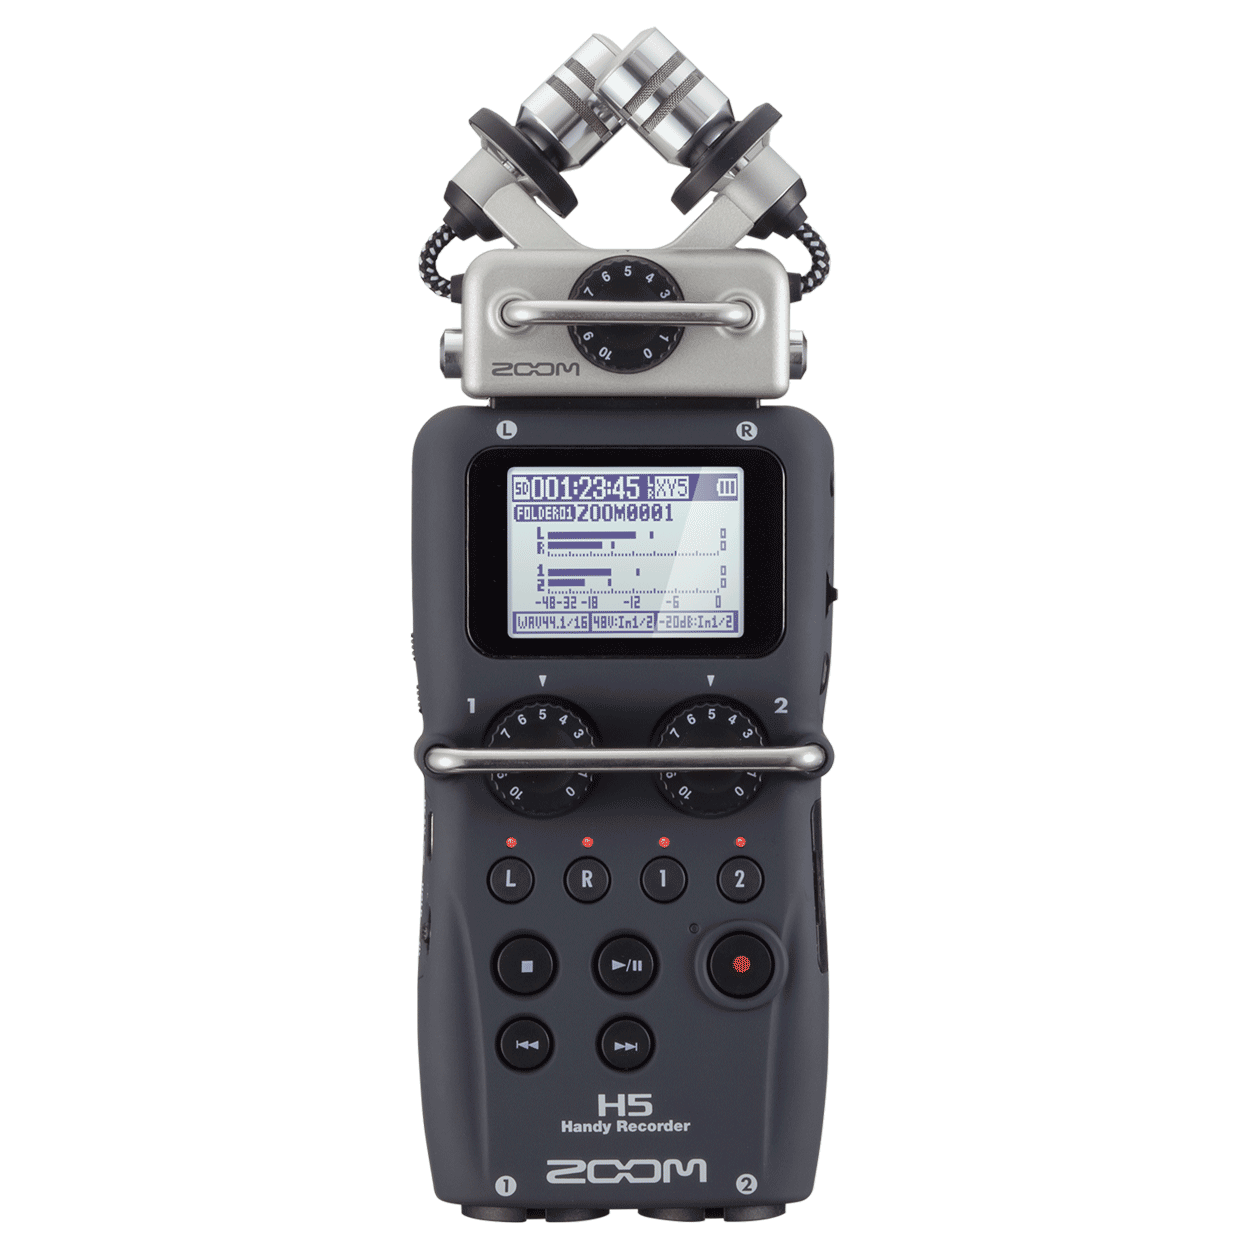 zoom_h5_audio_recorder.png